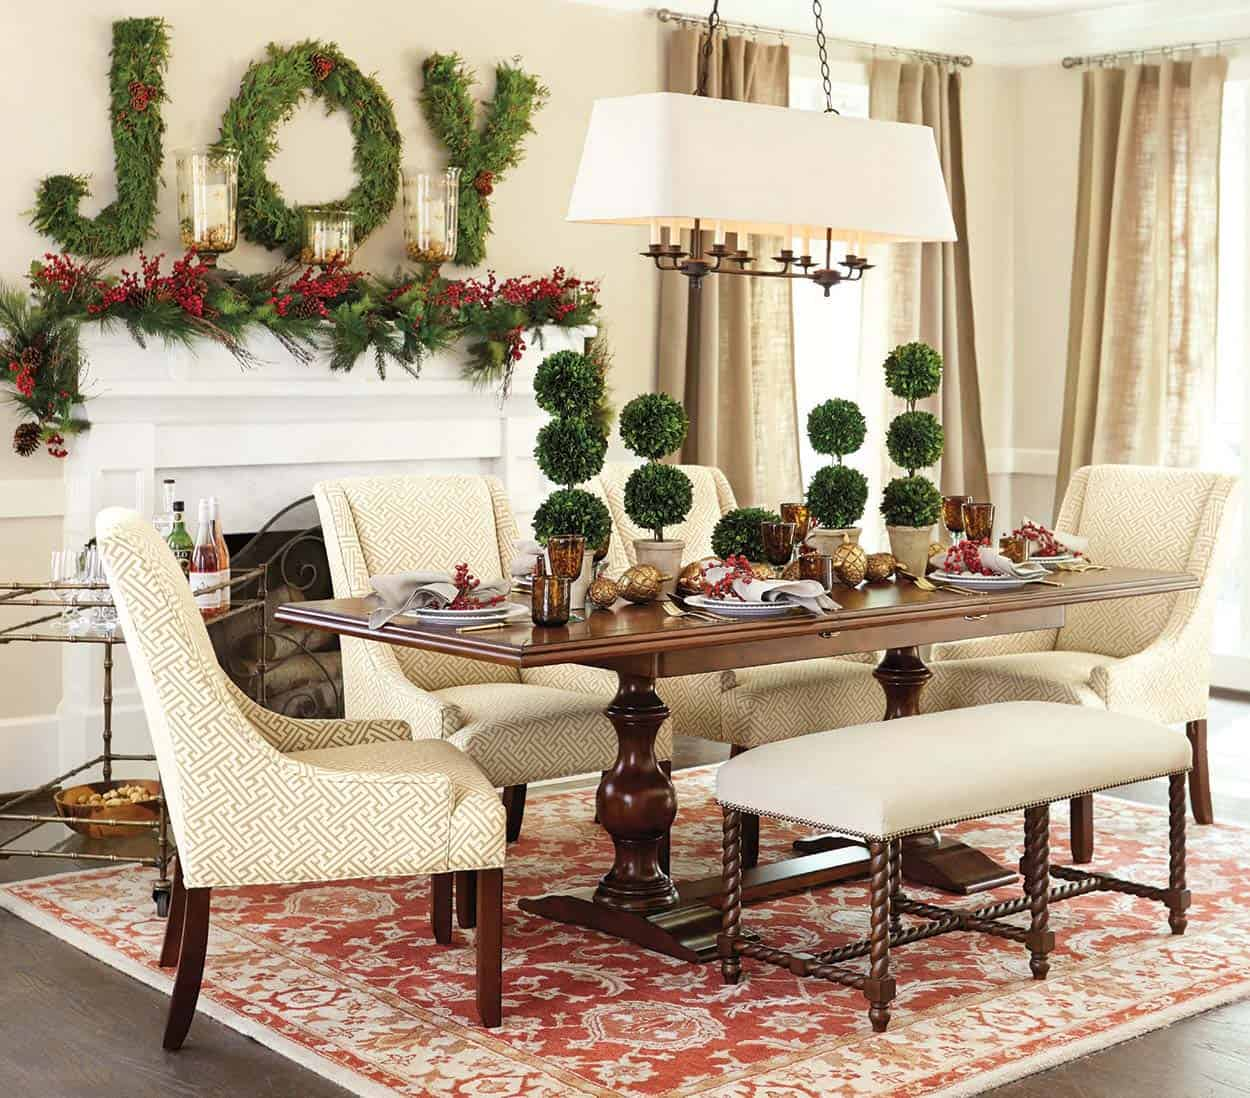 christmas-decor-ideas-rustic-country-17-1-kindesign